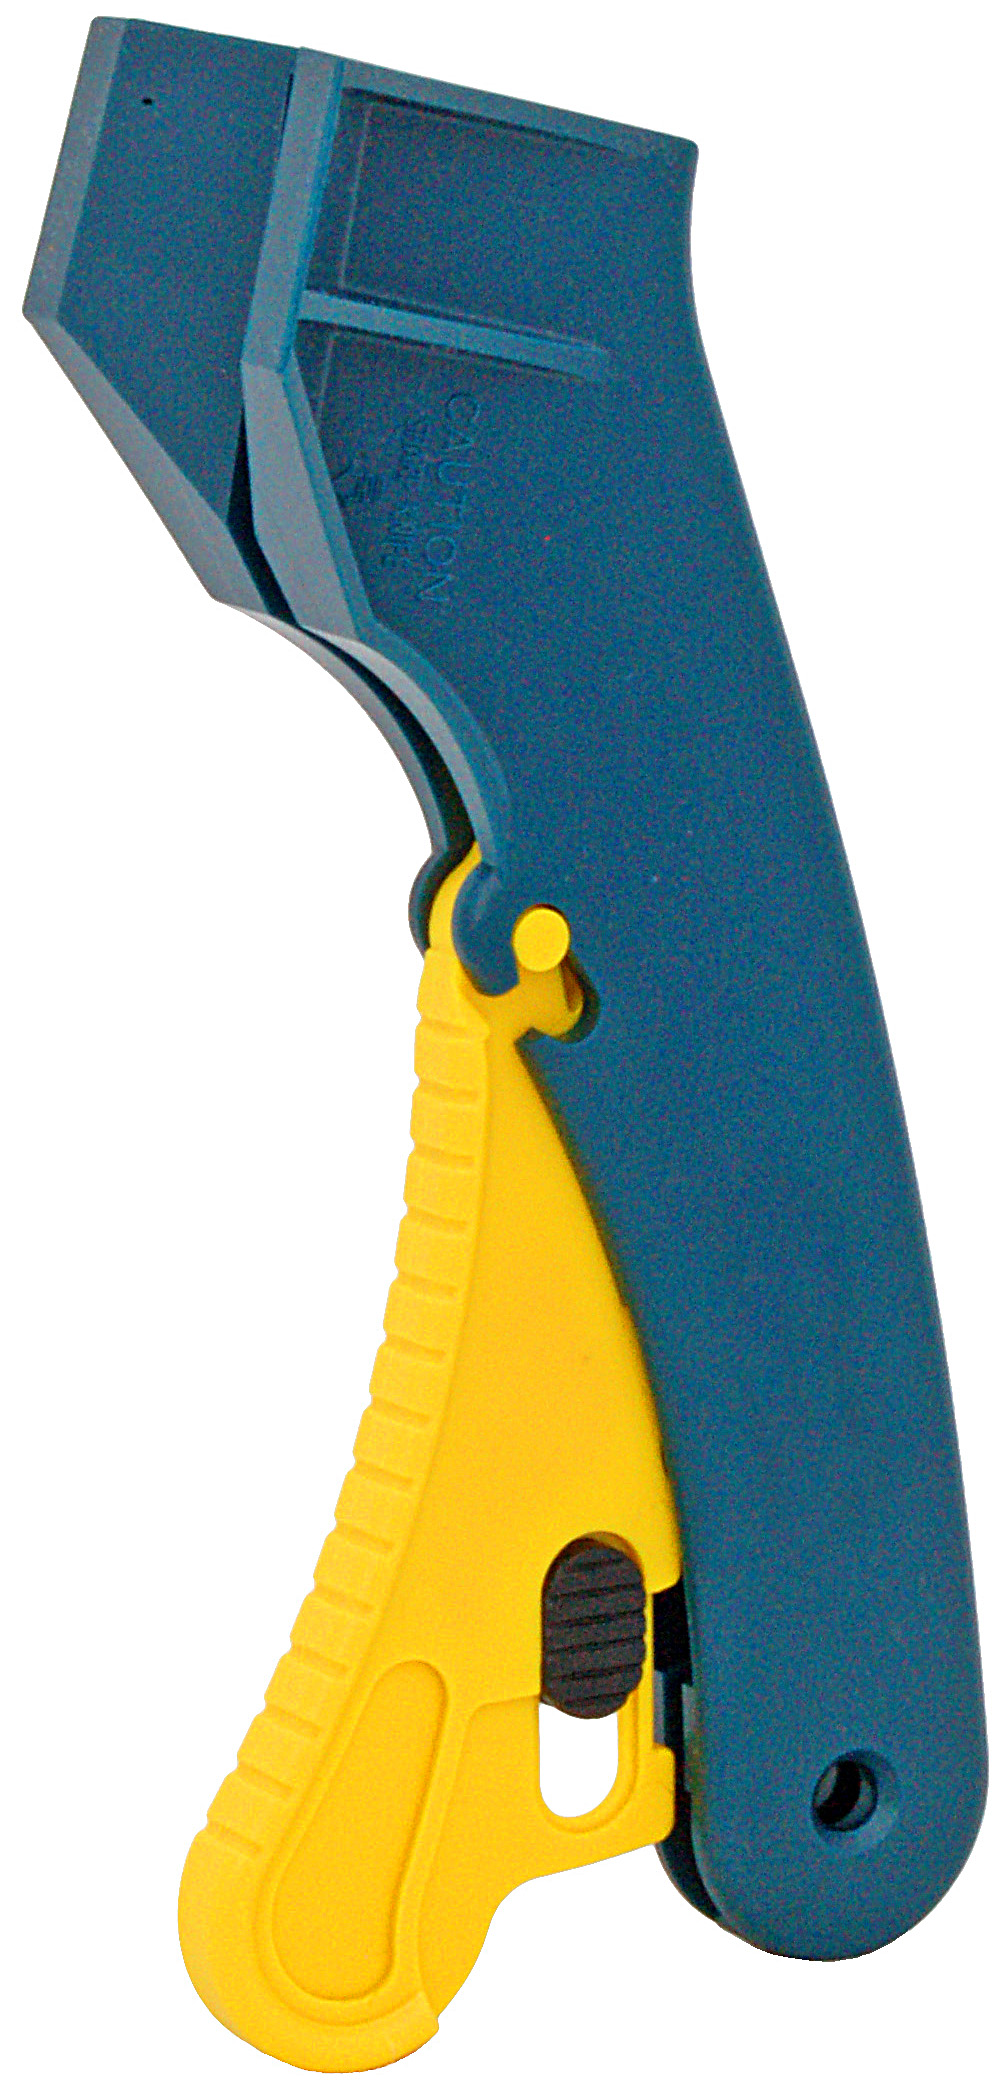 Zenport Box Knife UK209 Box Top Cutter Utility Knife with Safety Lock